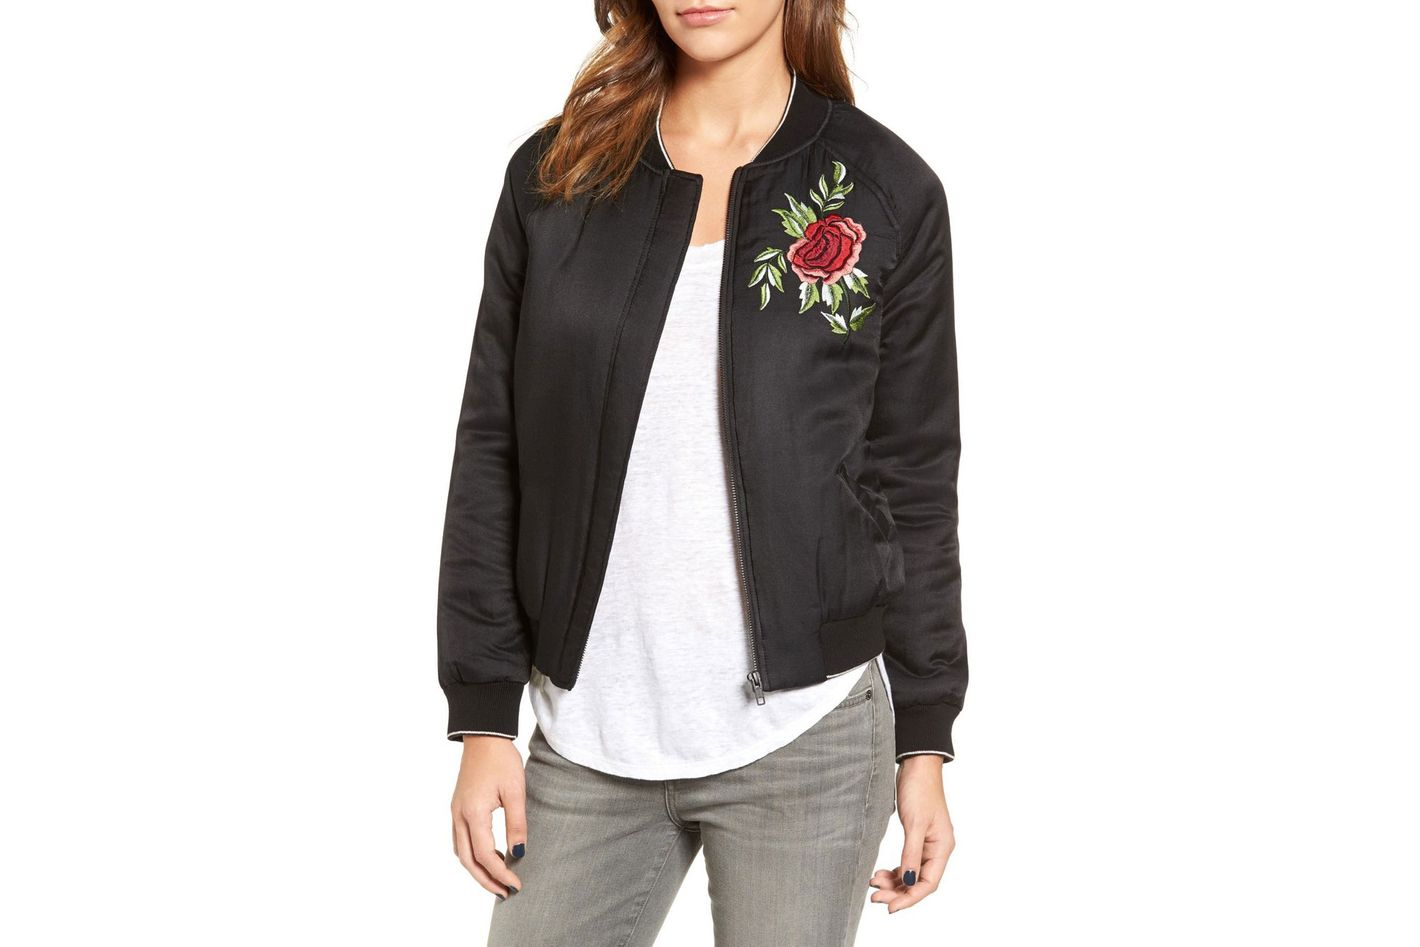 Velvet by Graham & Spencer Embroidered Bomber Jacket